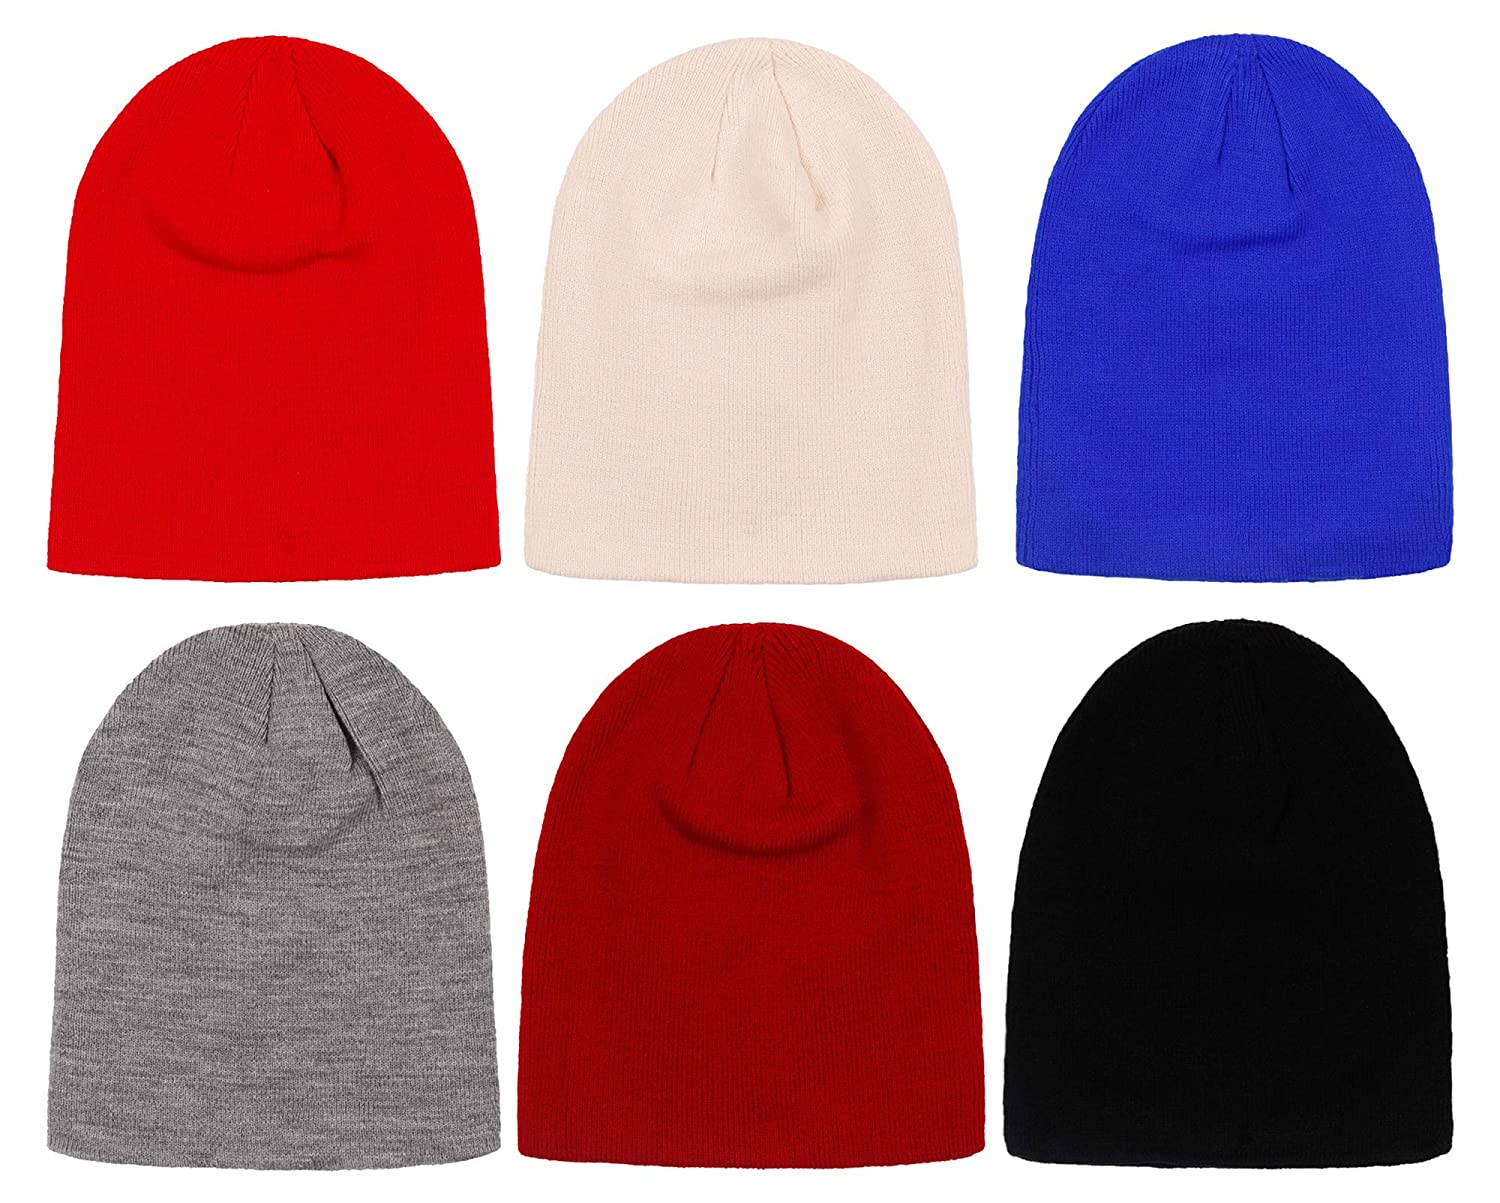 2ND DATE Women s Winter Beanie Knit Hat-Assorted-Pack of 6 at Amazon  Women s Clothing store  a62613e51383